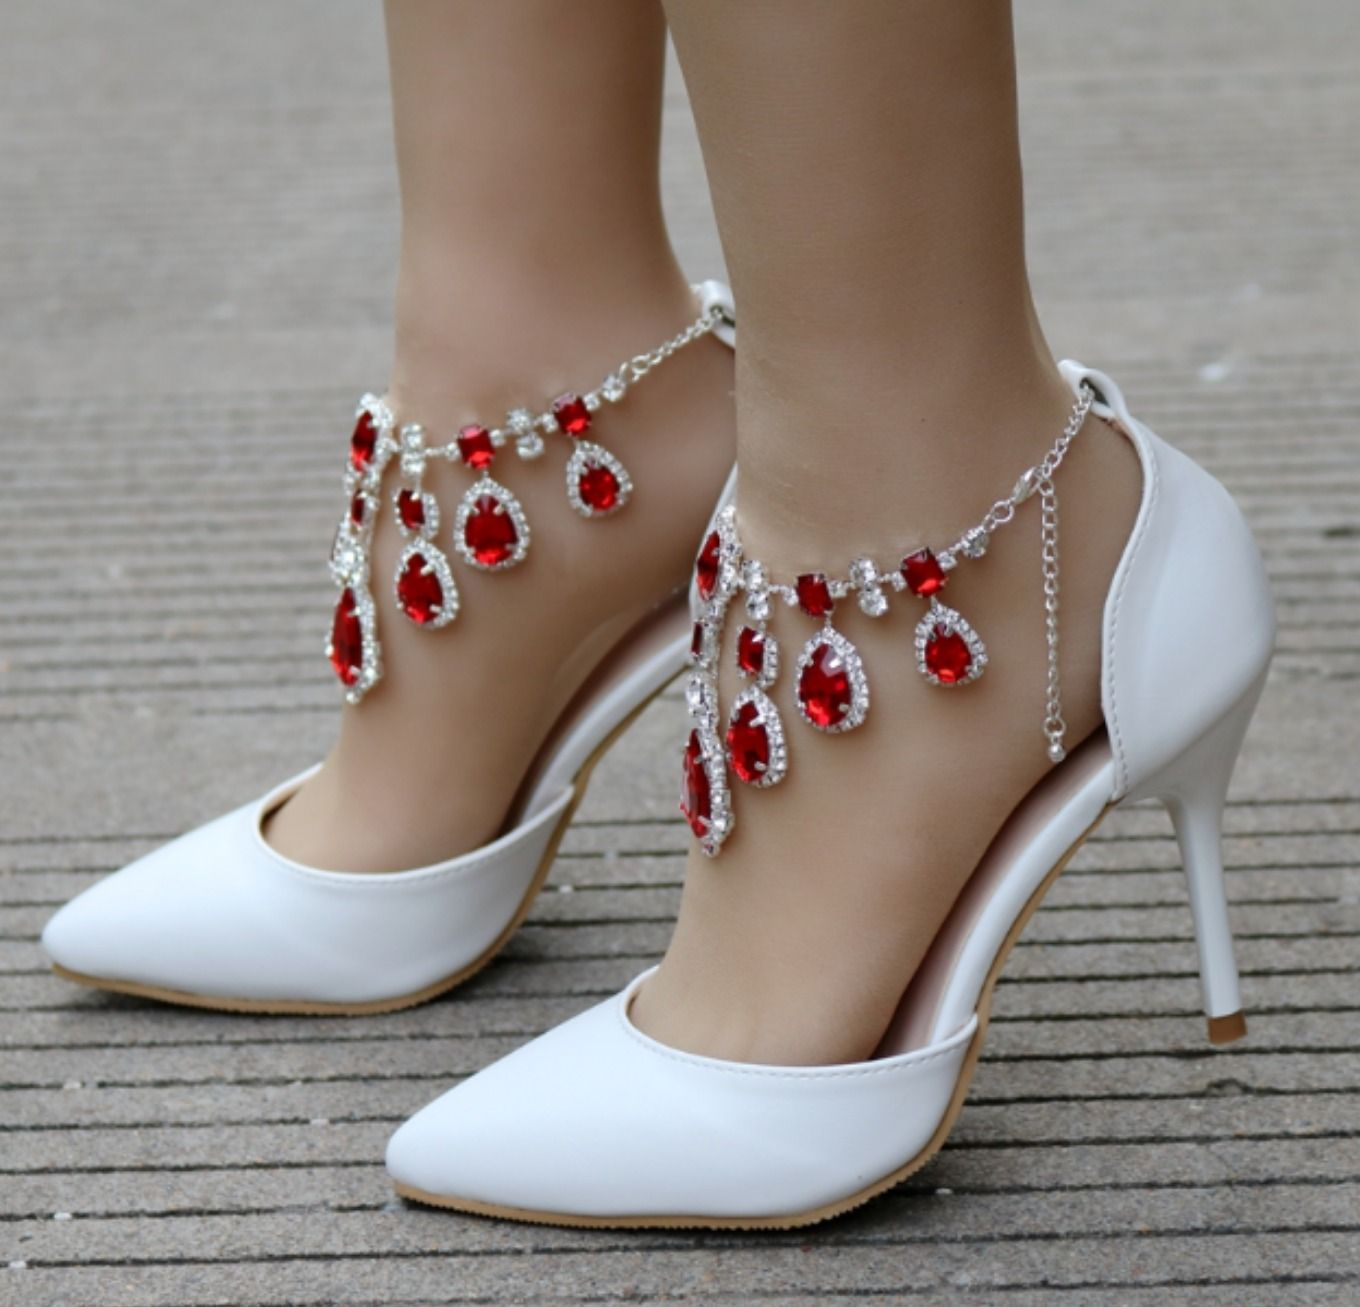 49++ Red wedding shoes with rhinestones ideas